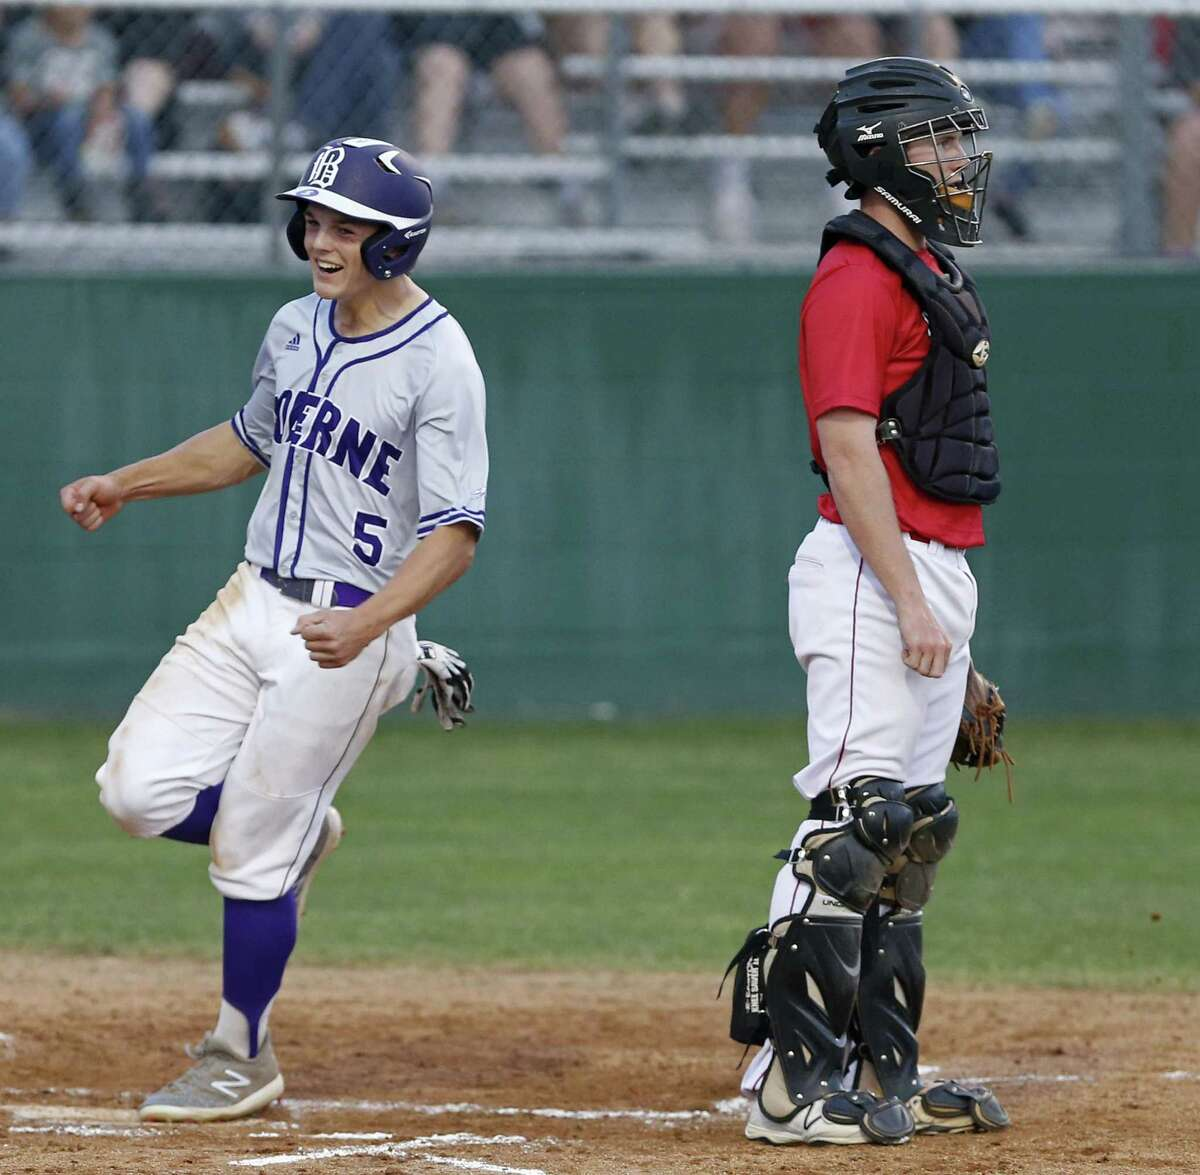 Boerne's Douglas Hodo celebrates as he scores around Fredericksburg's Daylon Nebgen during the second inning Friday April 6, 2018 at Greyhound Field in Boerne, Tx.